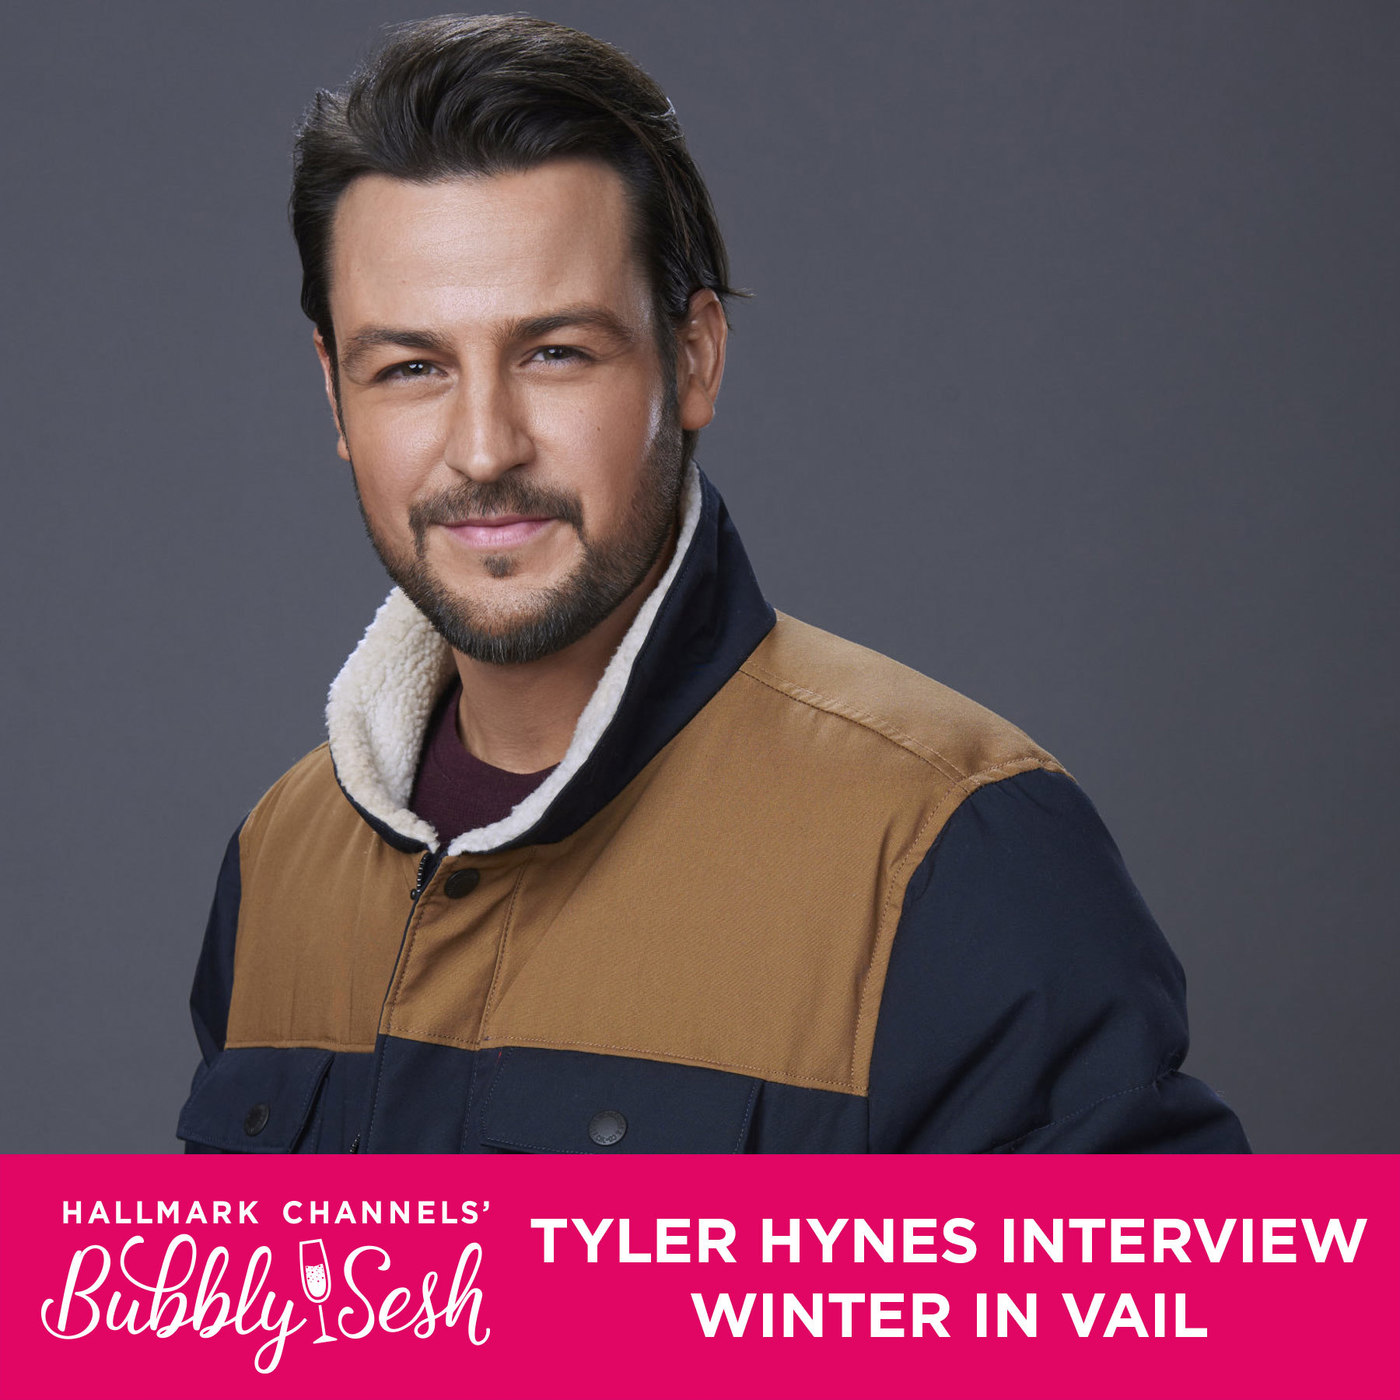 Tyler Hynes Interview, Winter in Vail